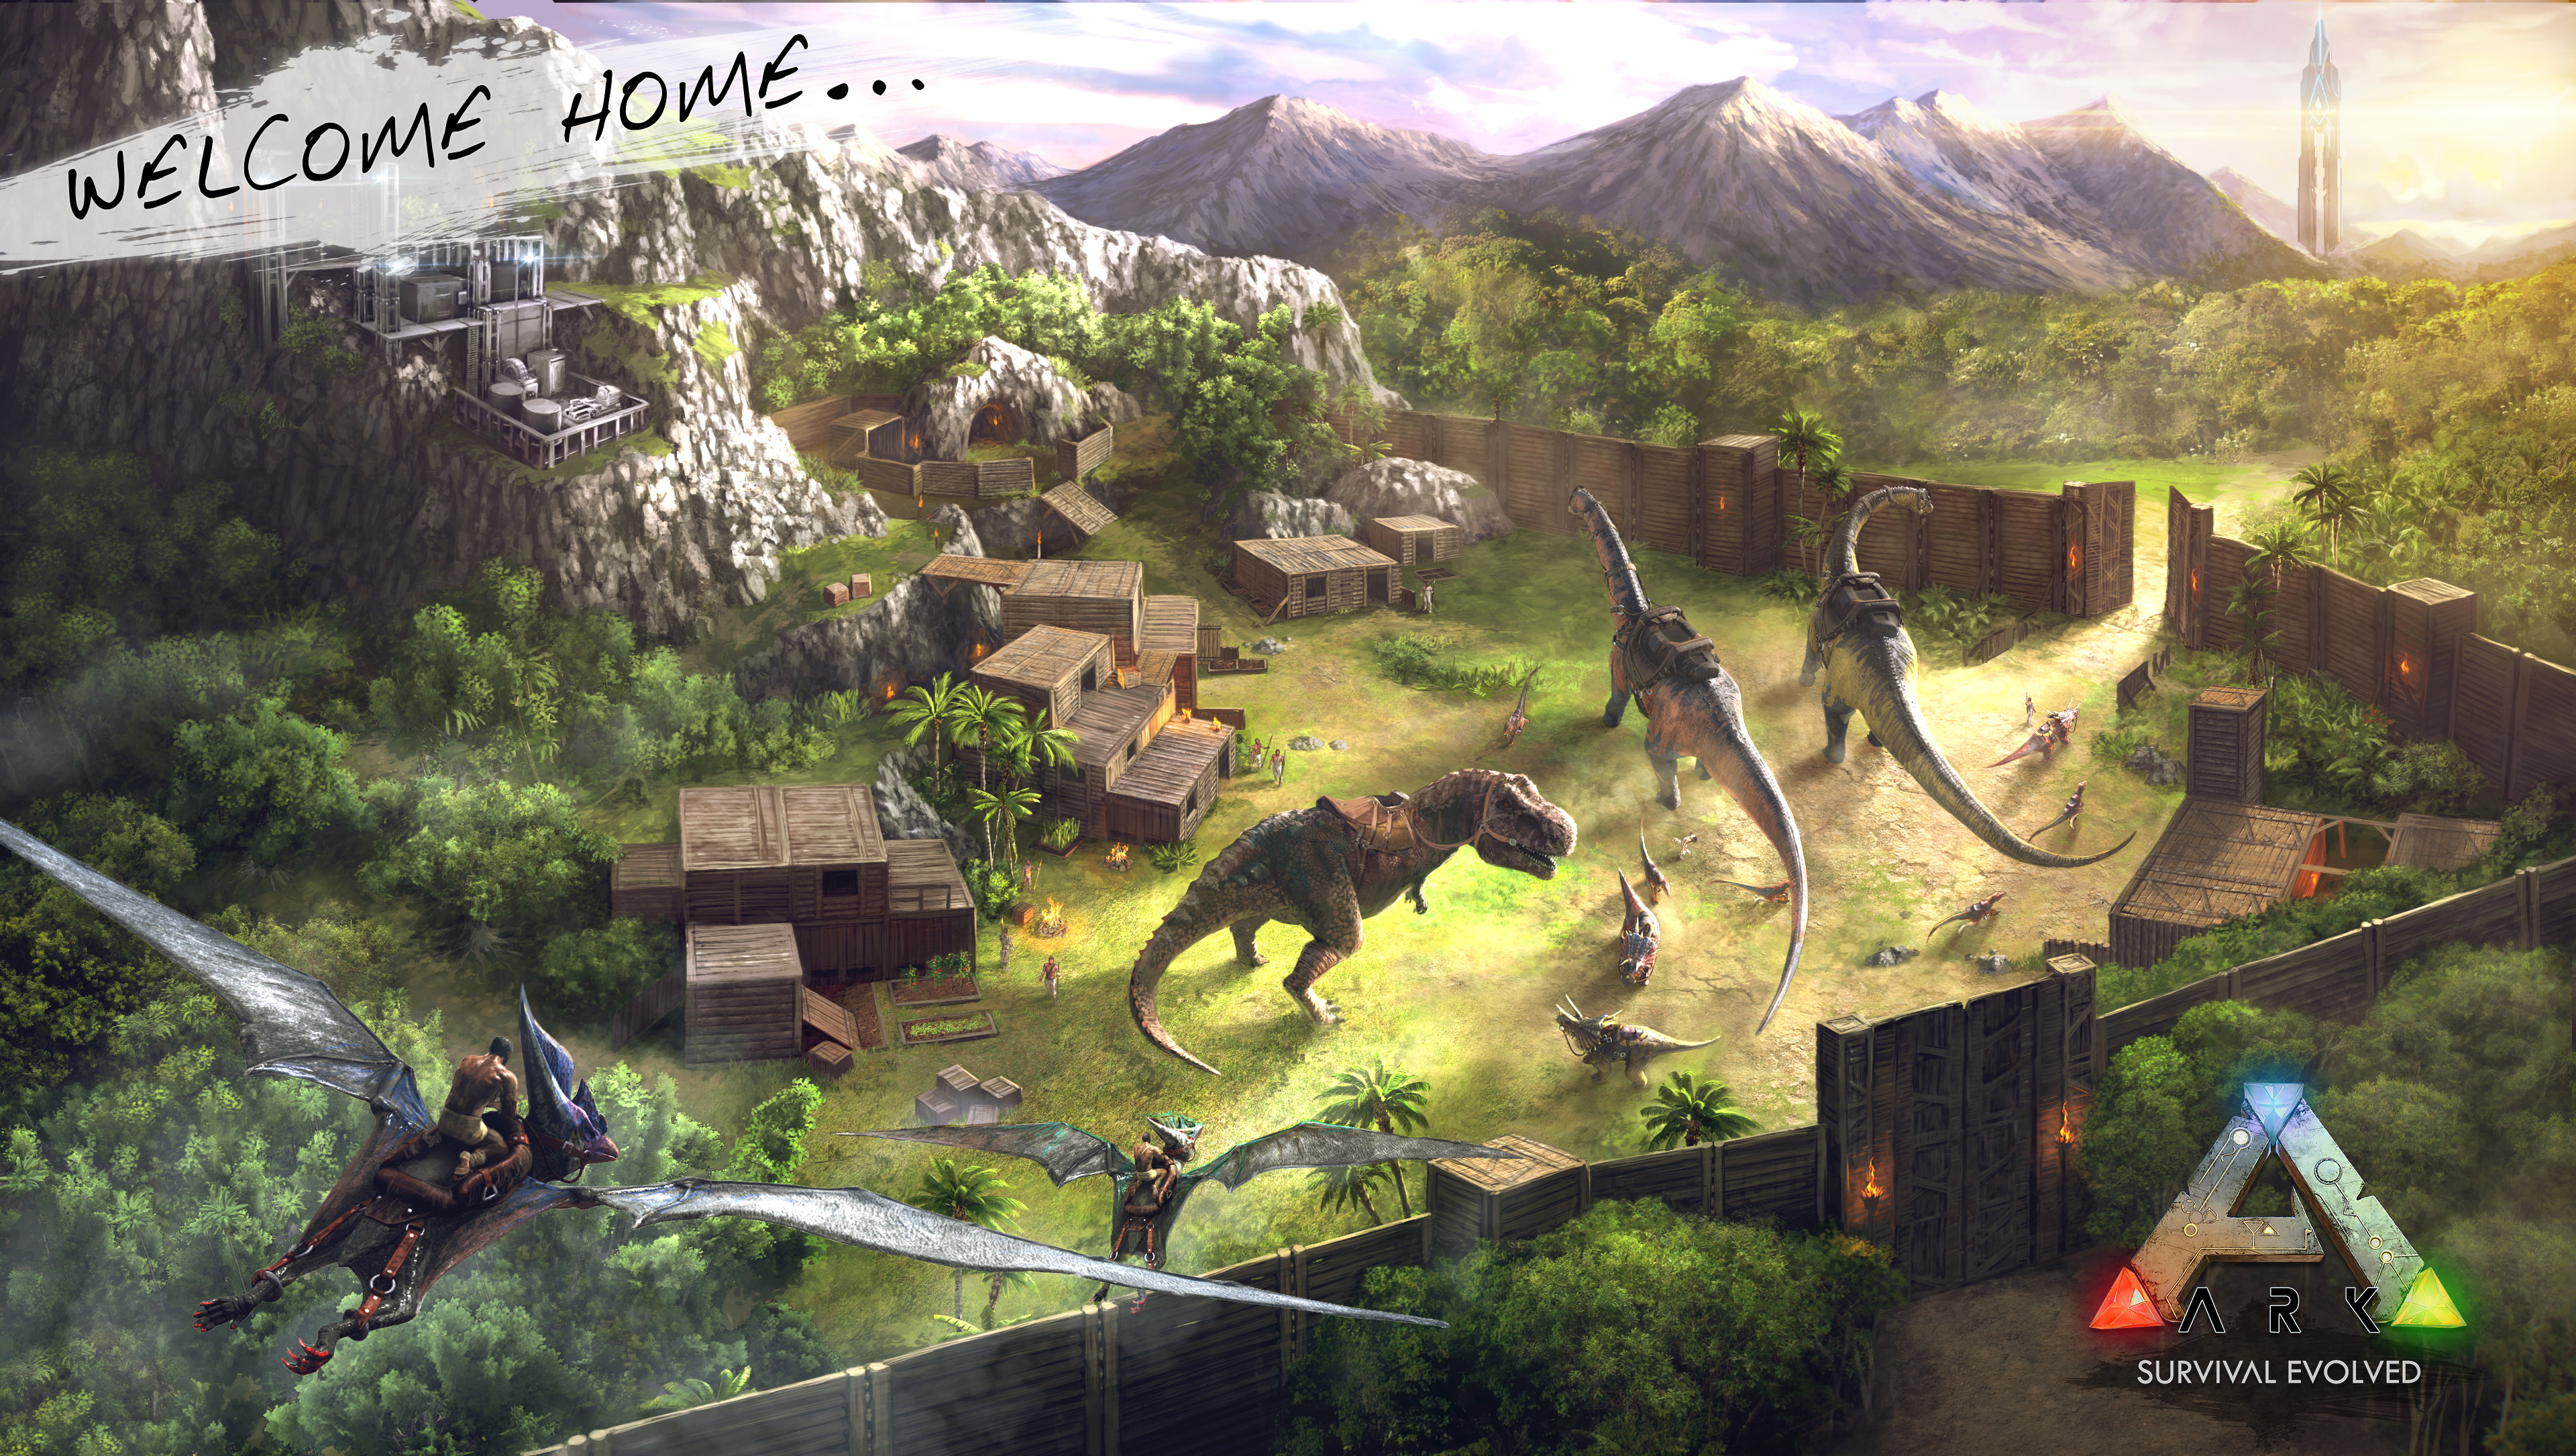 Amazing ARK: Survival Evolved Pictures & Backgrounds